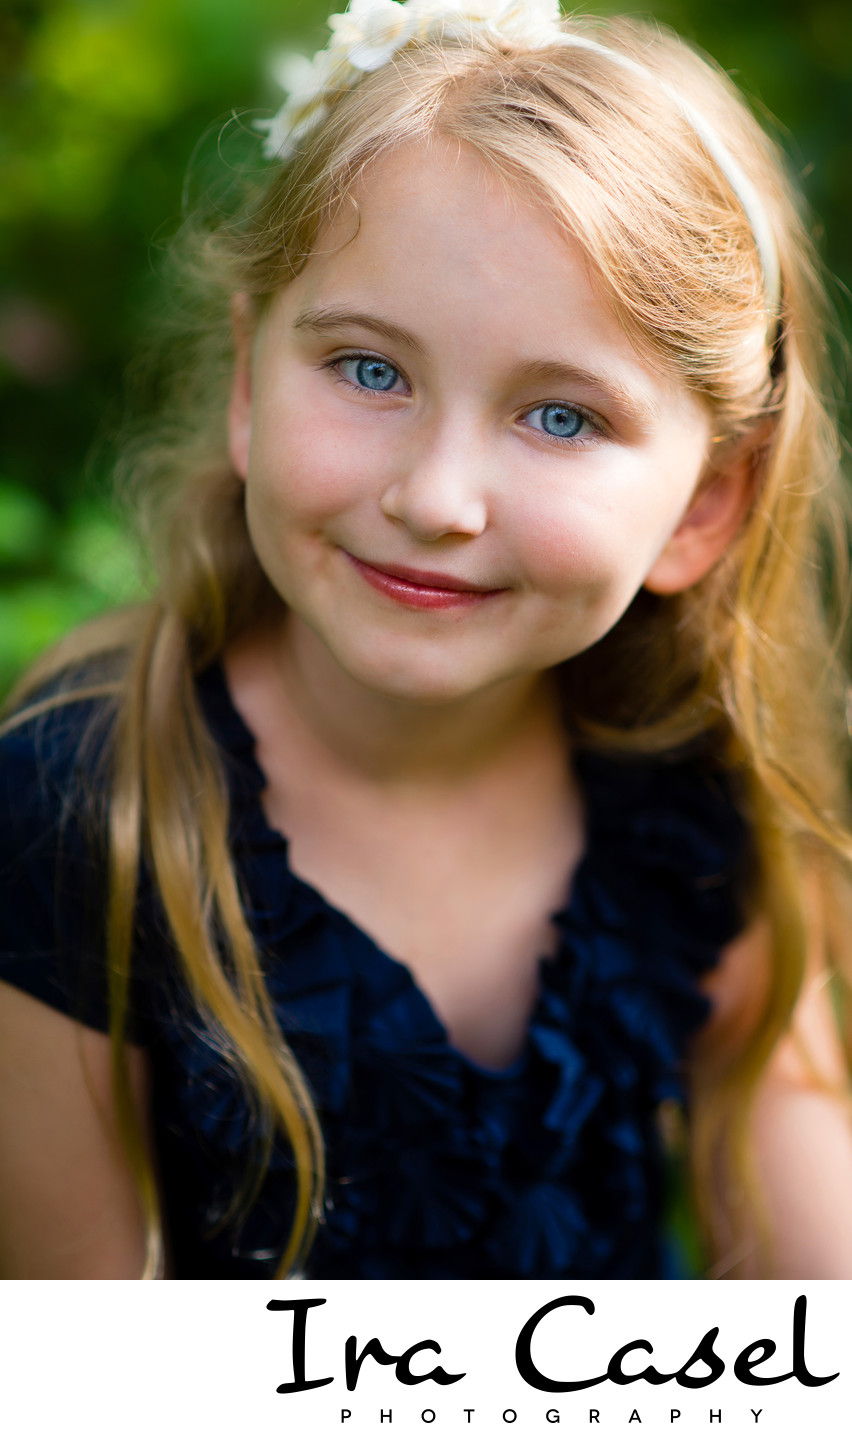 Short Hills Portrait Photographer for Kids and Families